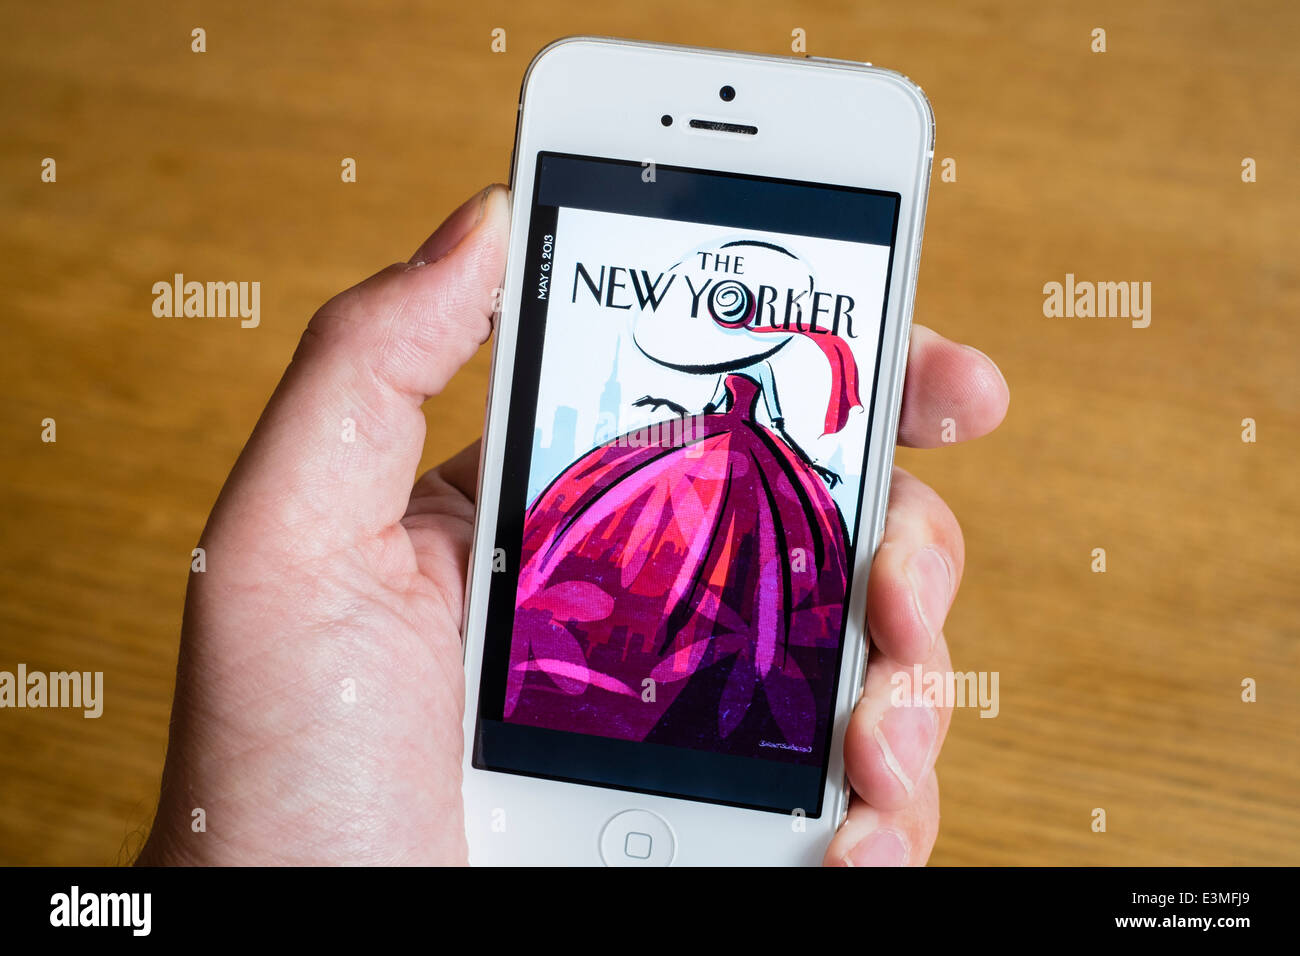 Detail of New Yorker mobile online app on iPhone smart phone - Stock Image